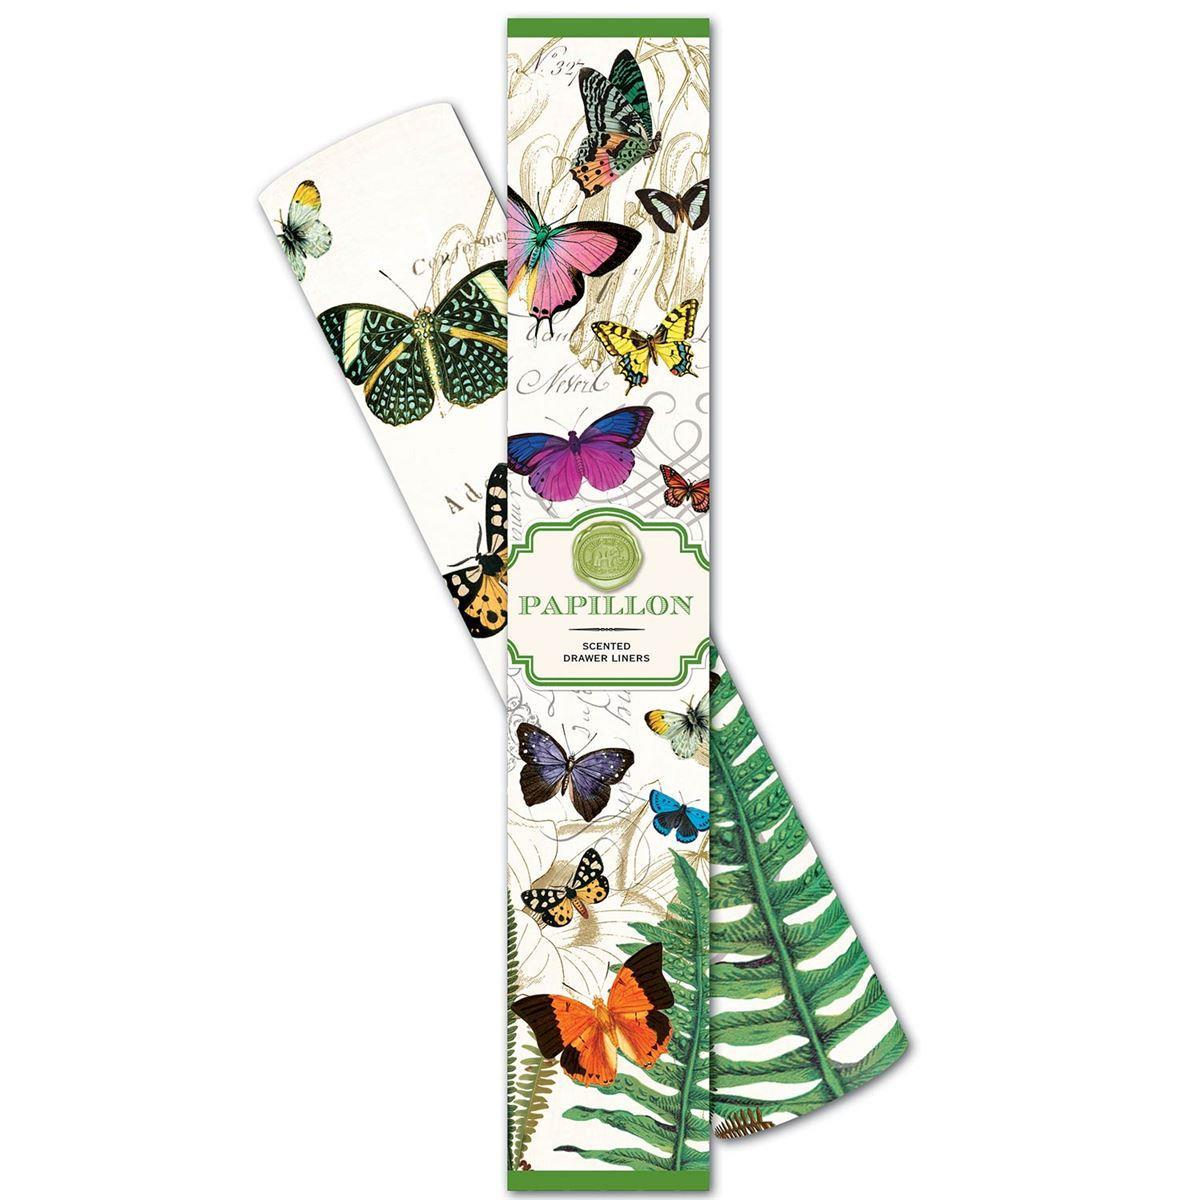 Papillon Drawer Liners - Boutique Marie Dumas